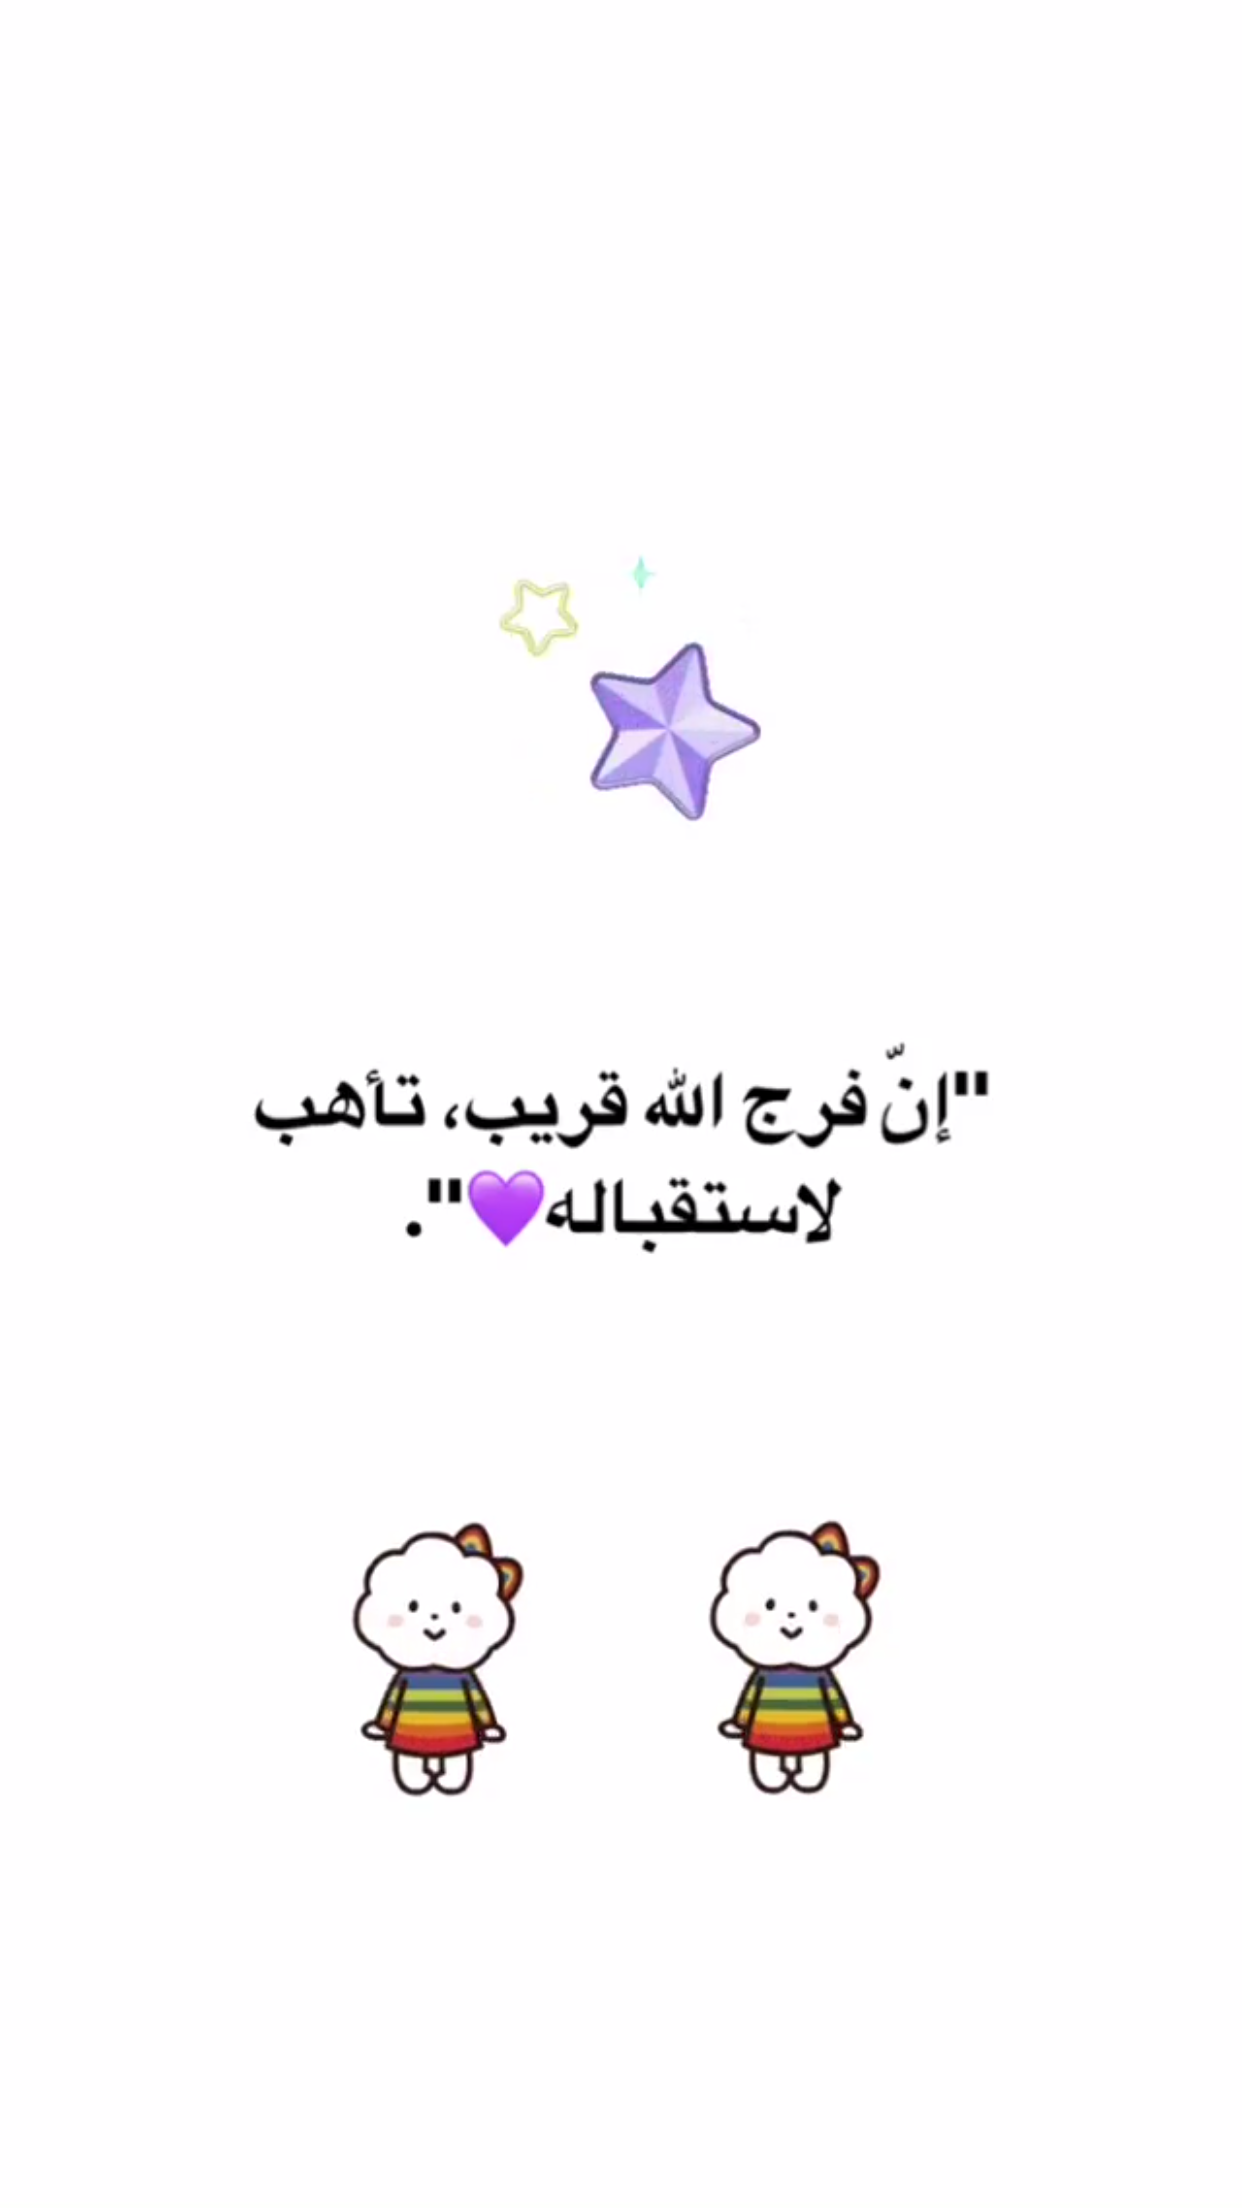 Pin By محبةالخير On إيجابيون Wallpaper Quotes Arabic Quotes Really Funny Pictures